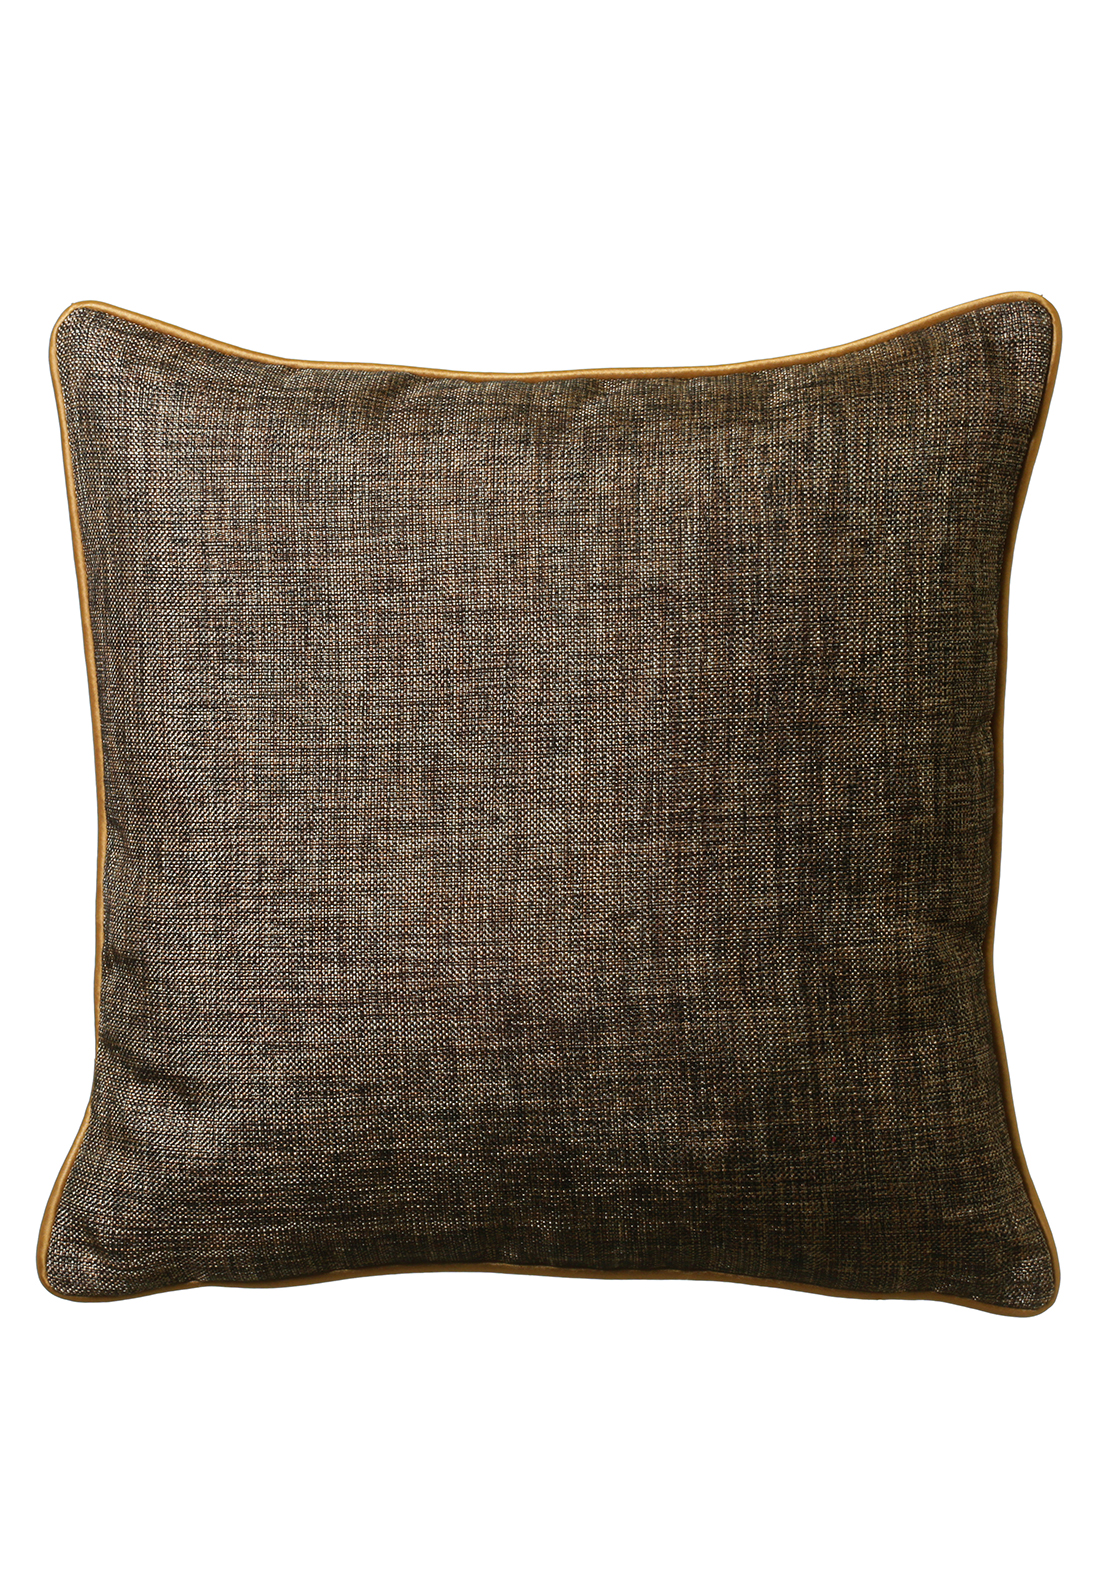 Scatterbox Vinca Cushion 43x43, Bronze